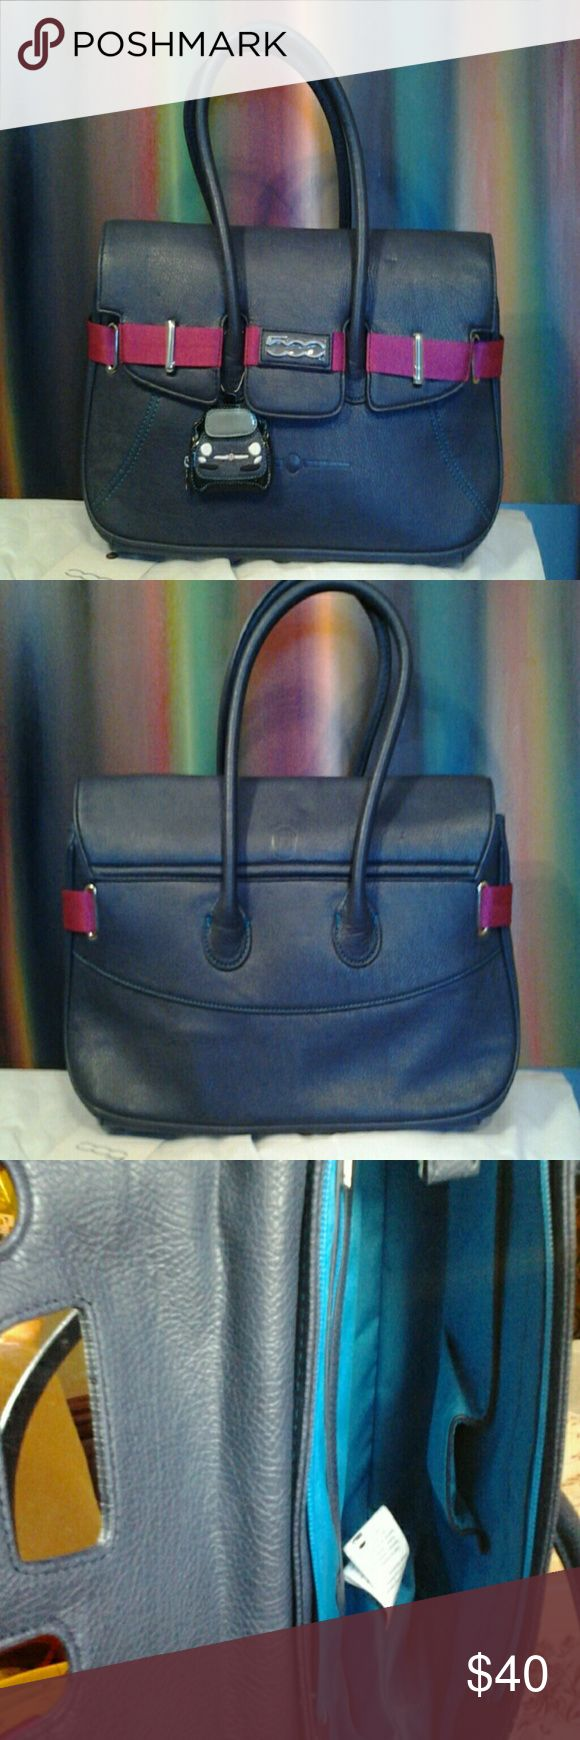 "Fiat 500 Chic Bi-color Handbag Large Navy faux leather w/ dark pink nylon contrasting strap design, quality teal stitching. Main zipper closure, top flap has three exterior magnetic closure . Teal interior w/ zipper closure pocket @ back, & two open cellphone pockets @ interior front.mirror @ interior of flap.  Silver hardware, removable fiat change purse hangs @ exterior handle. Some very minor marks on leather. Interior pristine, never used. Comes with duster bag, marks on duster bag. 18""w…"